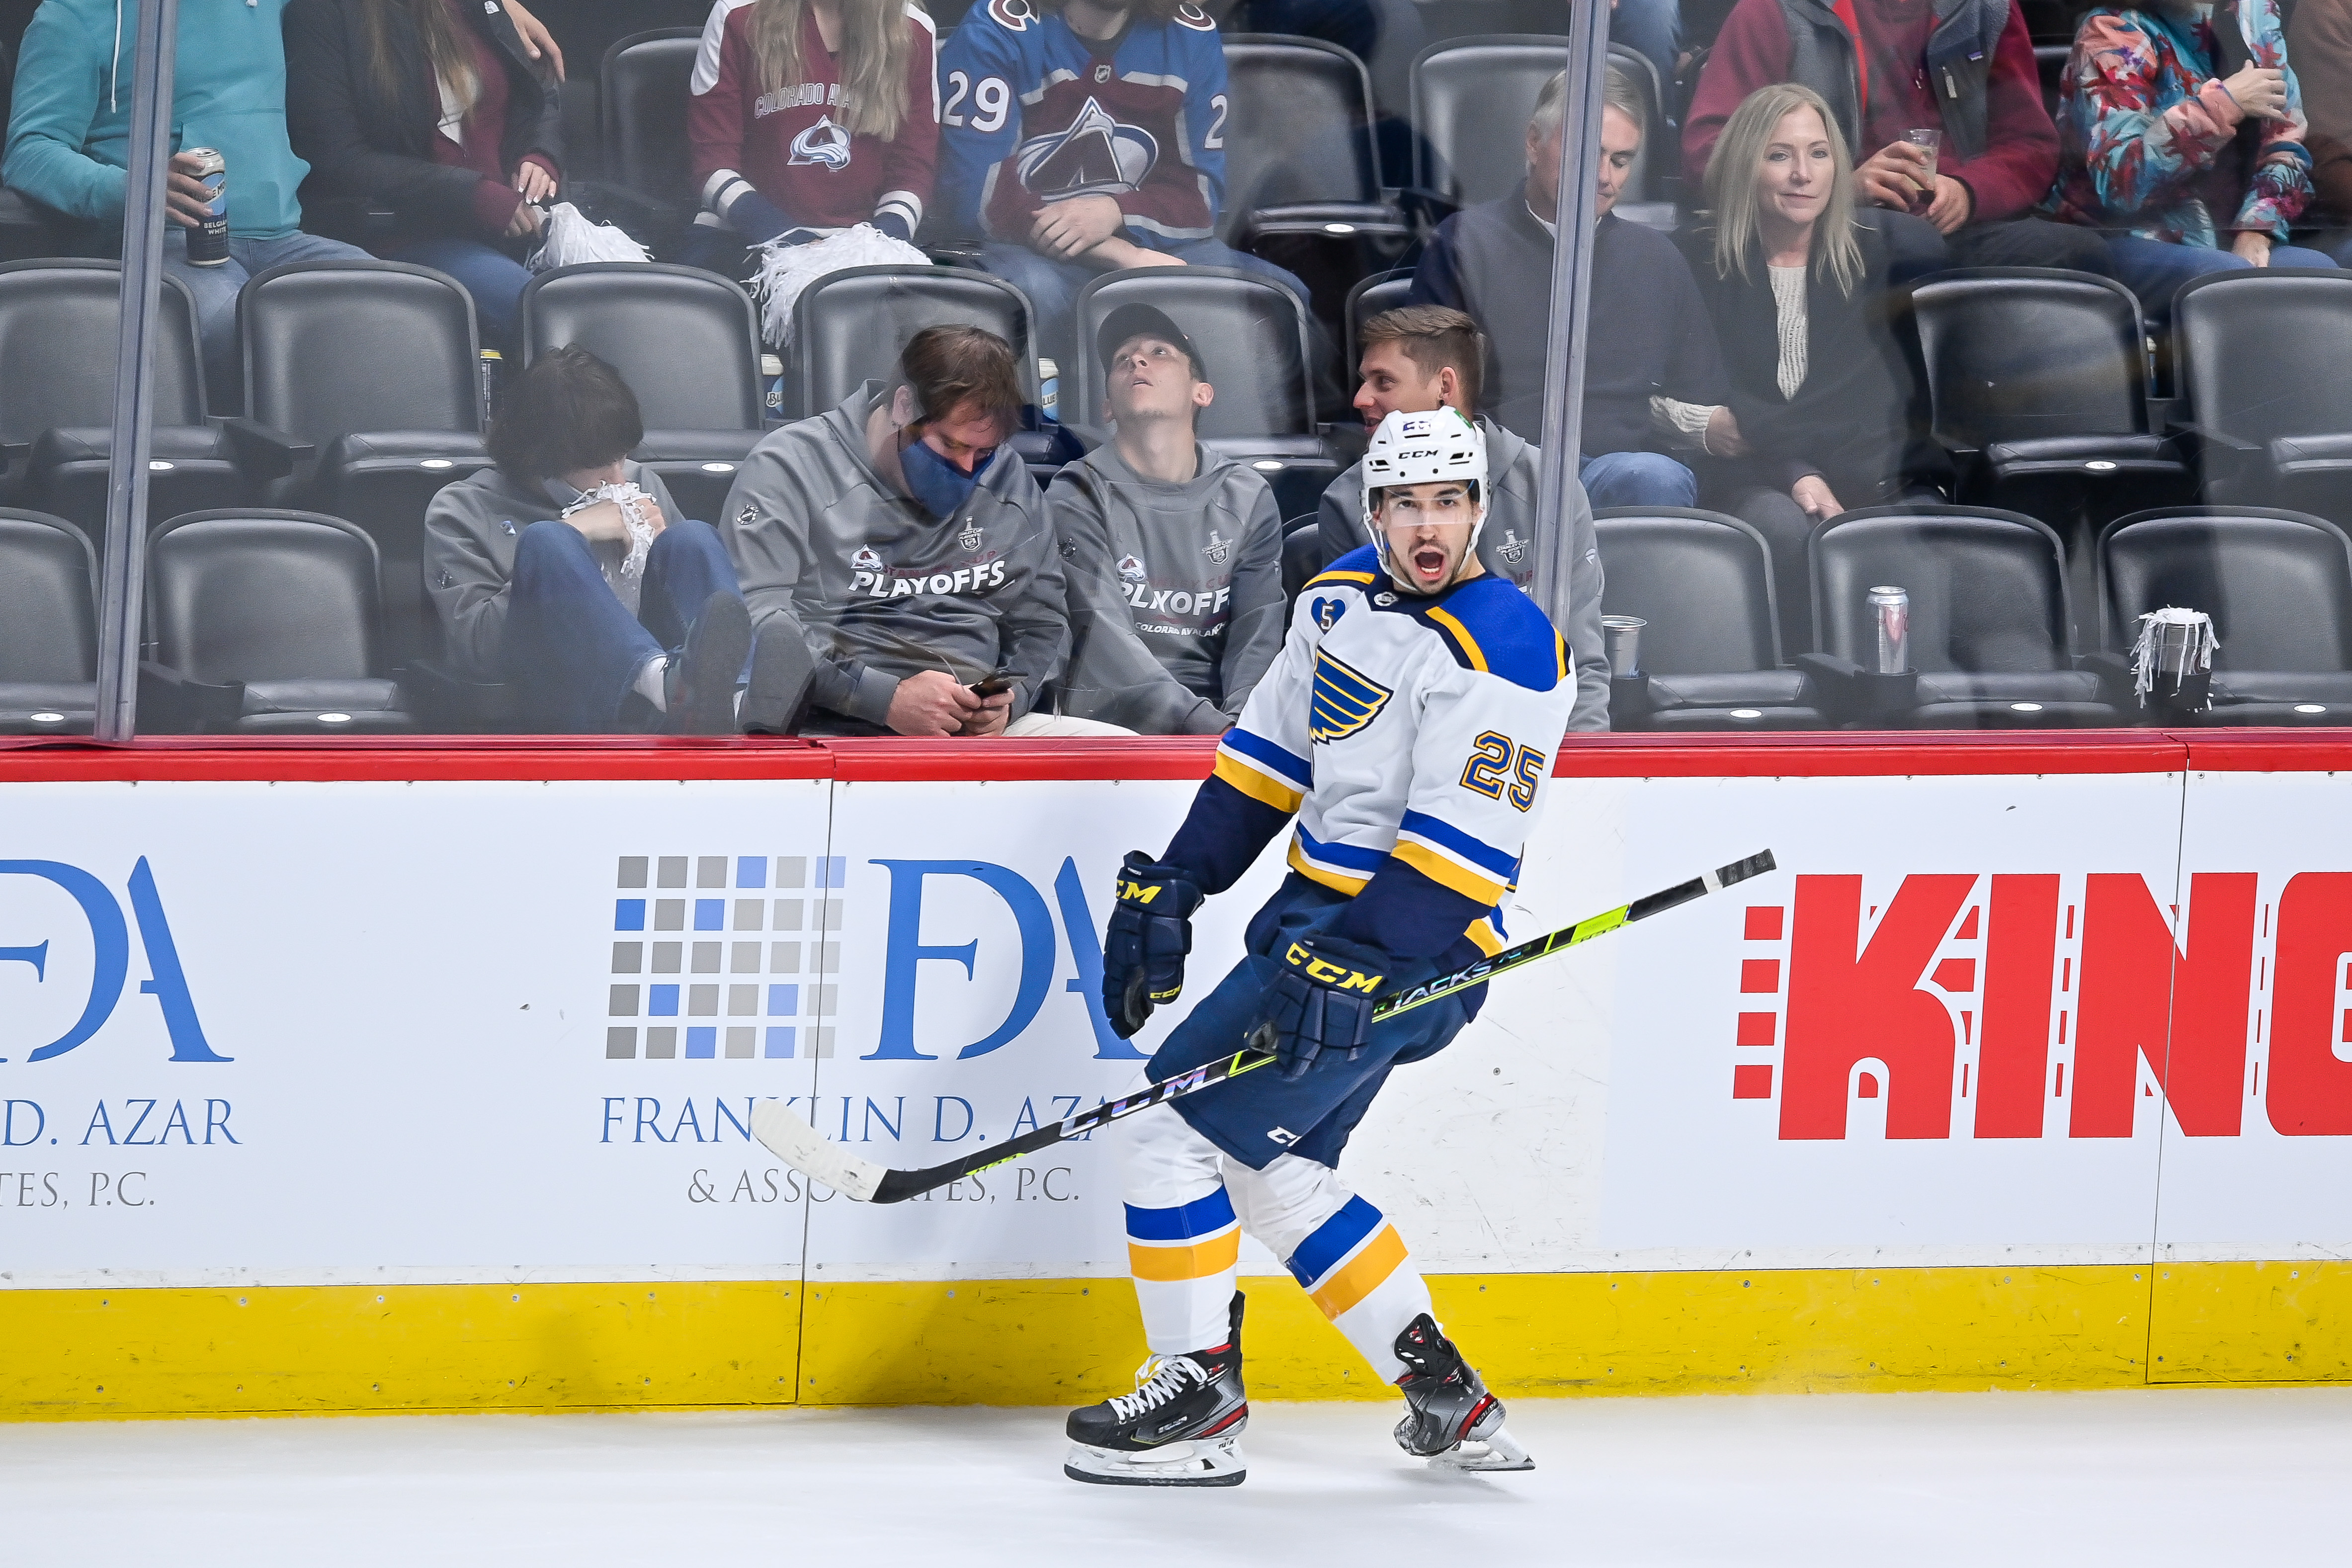 NHL: MAY 17 Stanley Cup Playoffs First Round - Blues at Avalanche